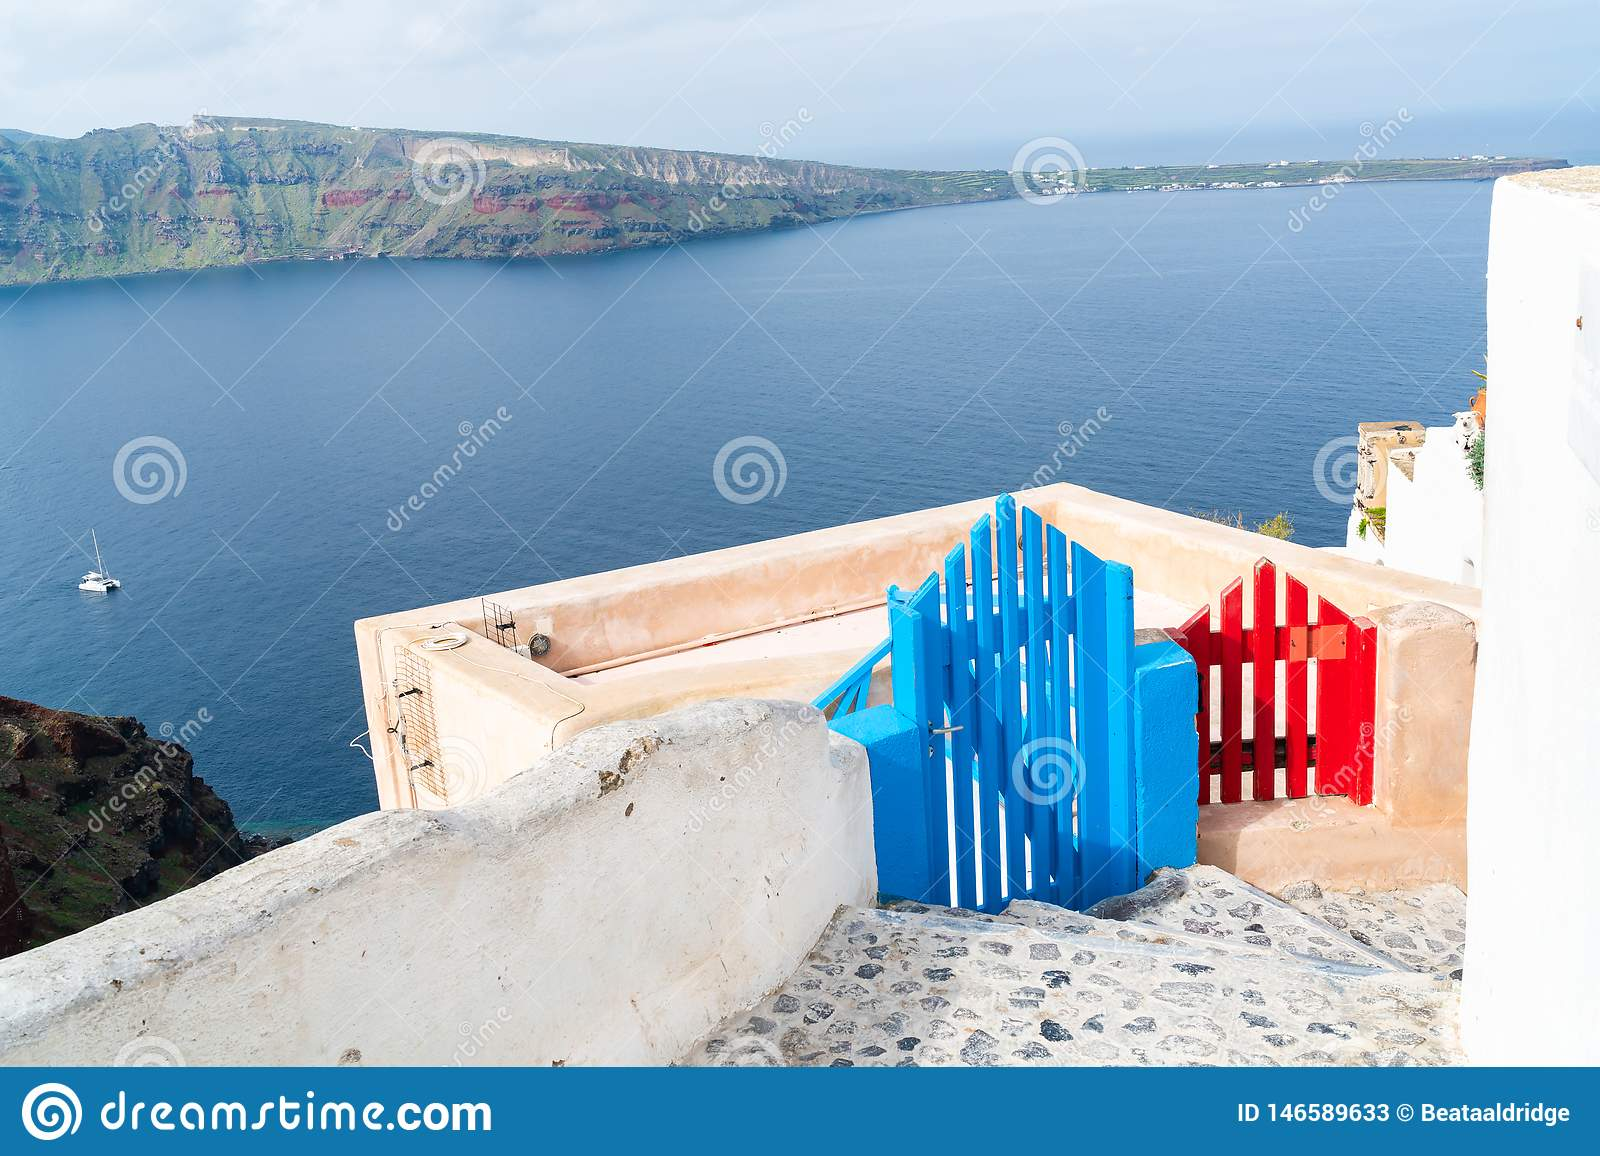 View of wooden blue and red gates and Aegean Sea in Oia, Santorini